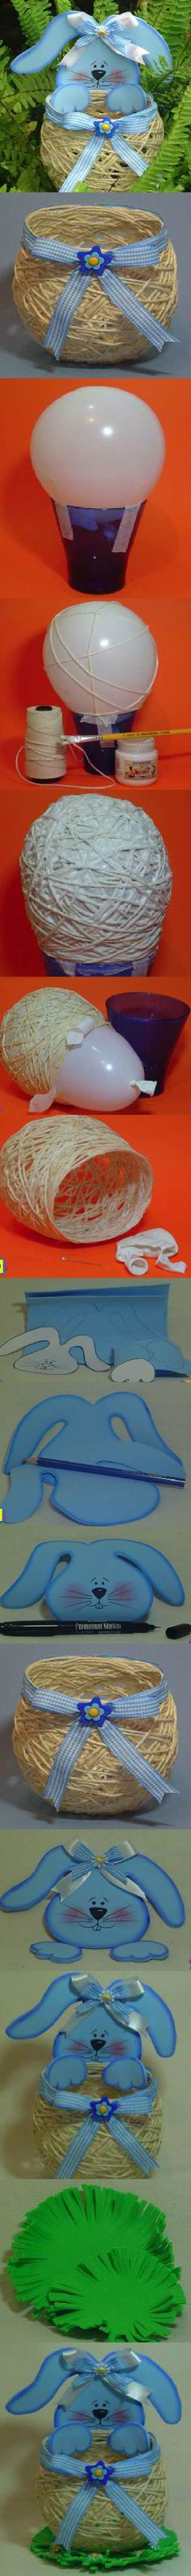 DIY Yarn String Easter Basket 2